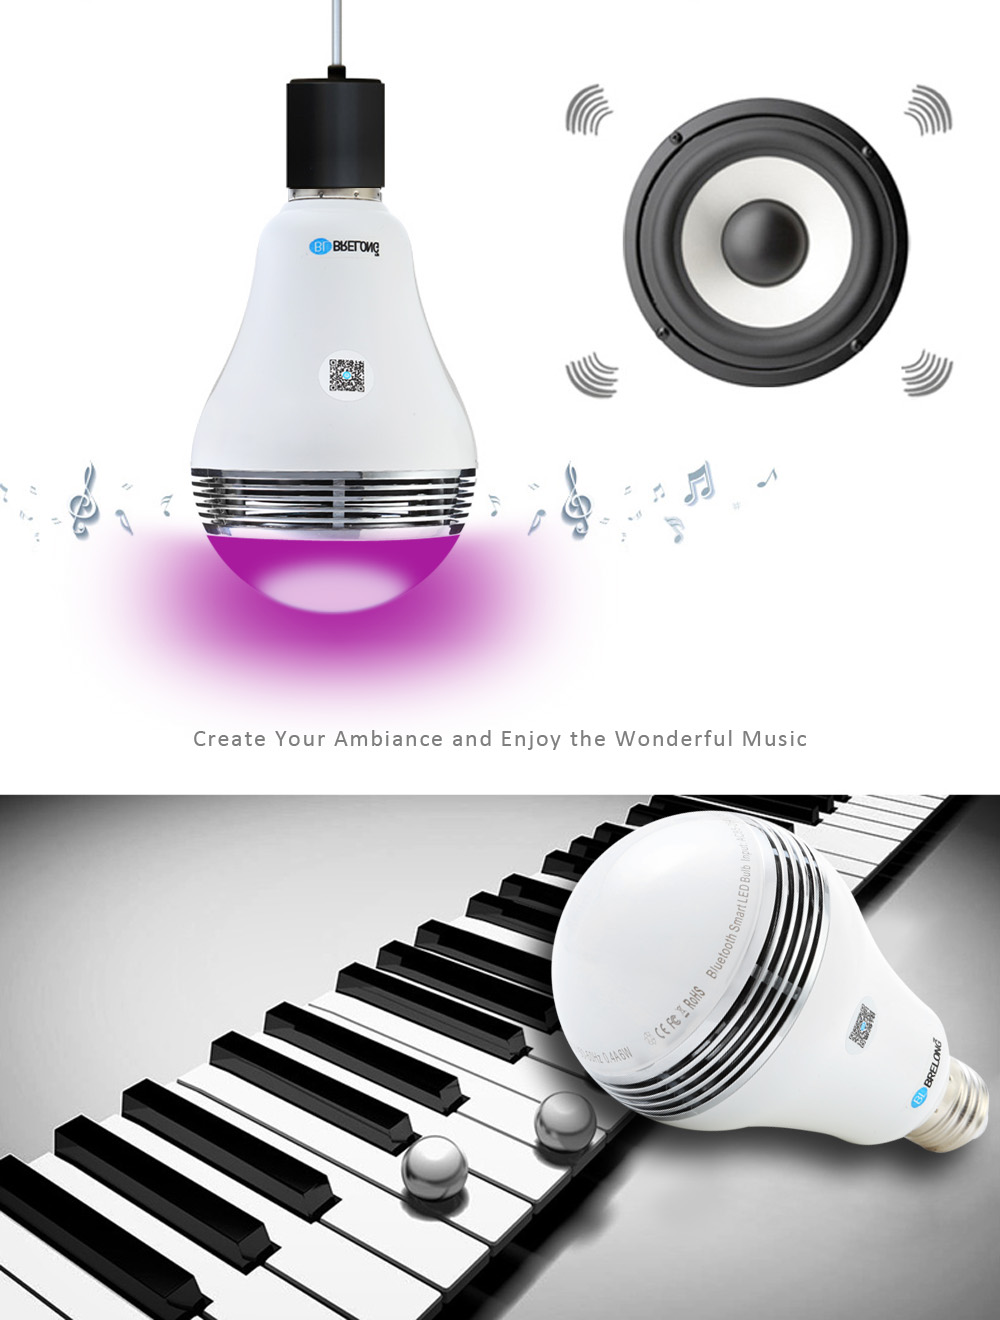 BRELONG Bluetooth 4.0 RGB LED Smart Bulb with HiFi Speaker